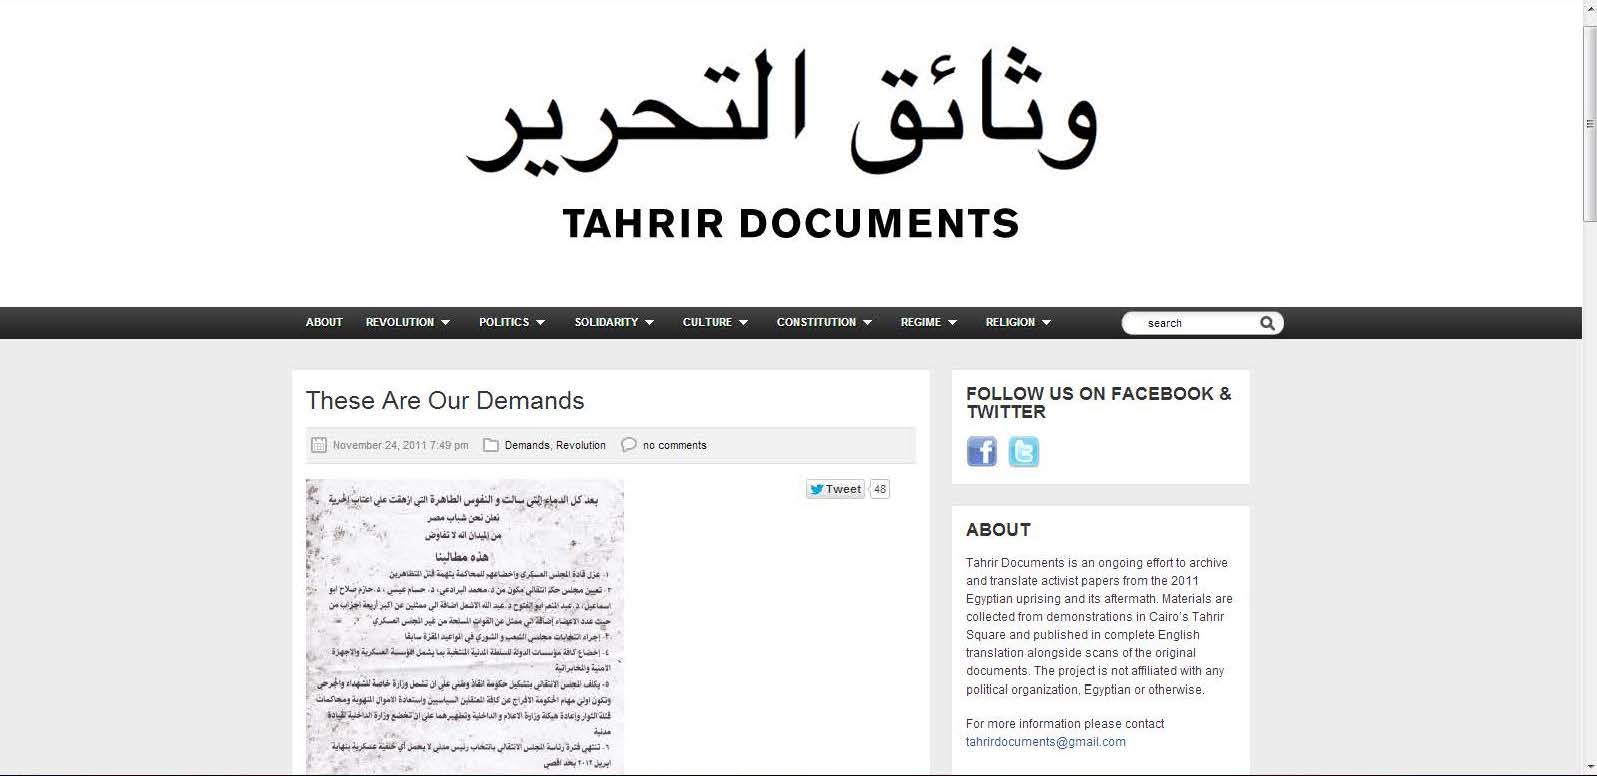 Sample document on TahrirDocuments.org